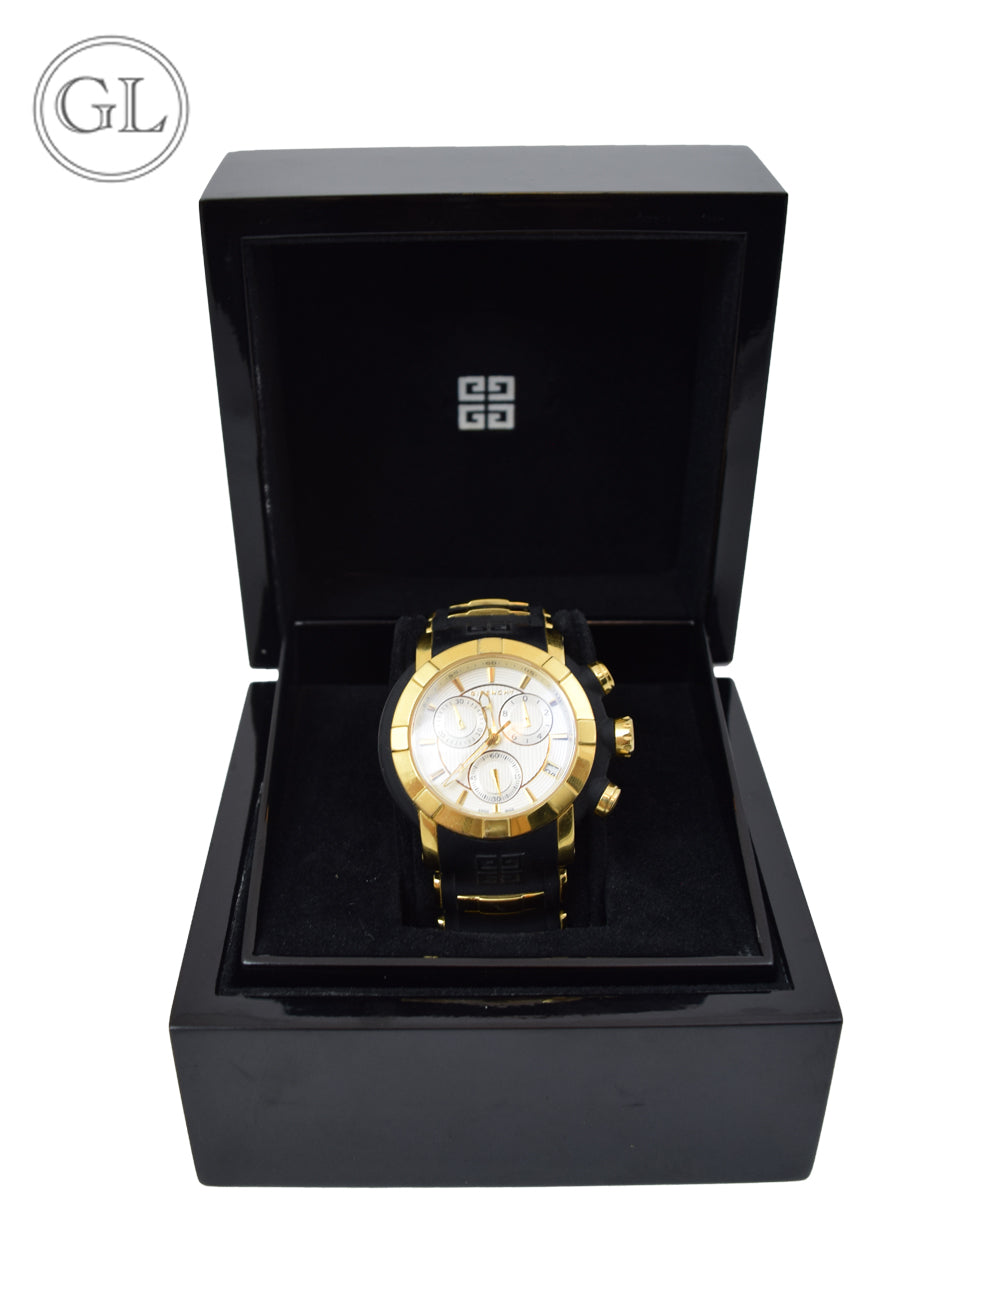 Givenchy Black and Gold Watch